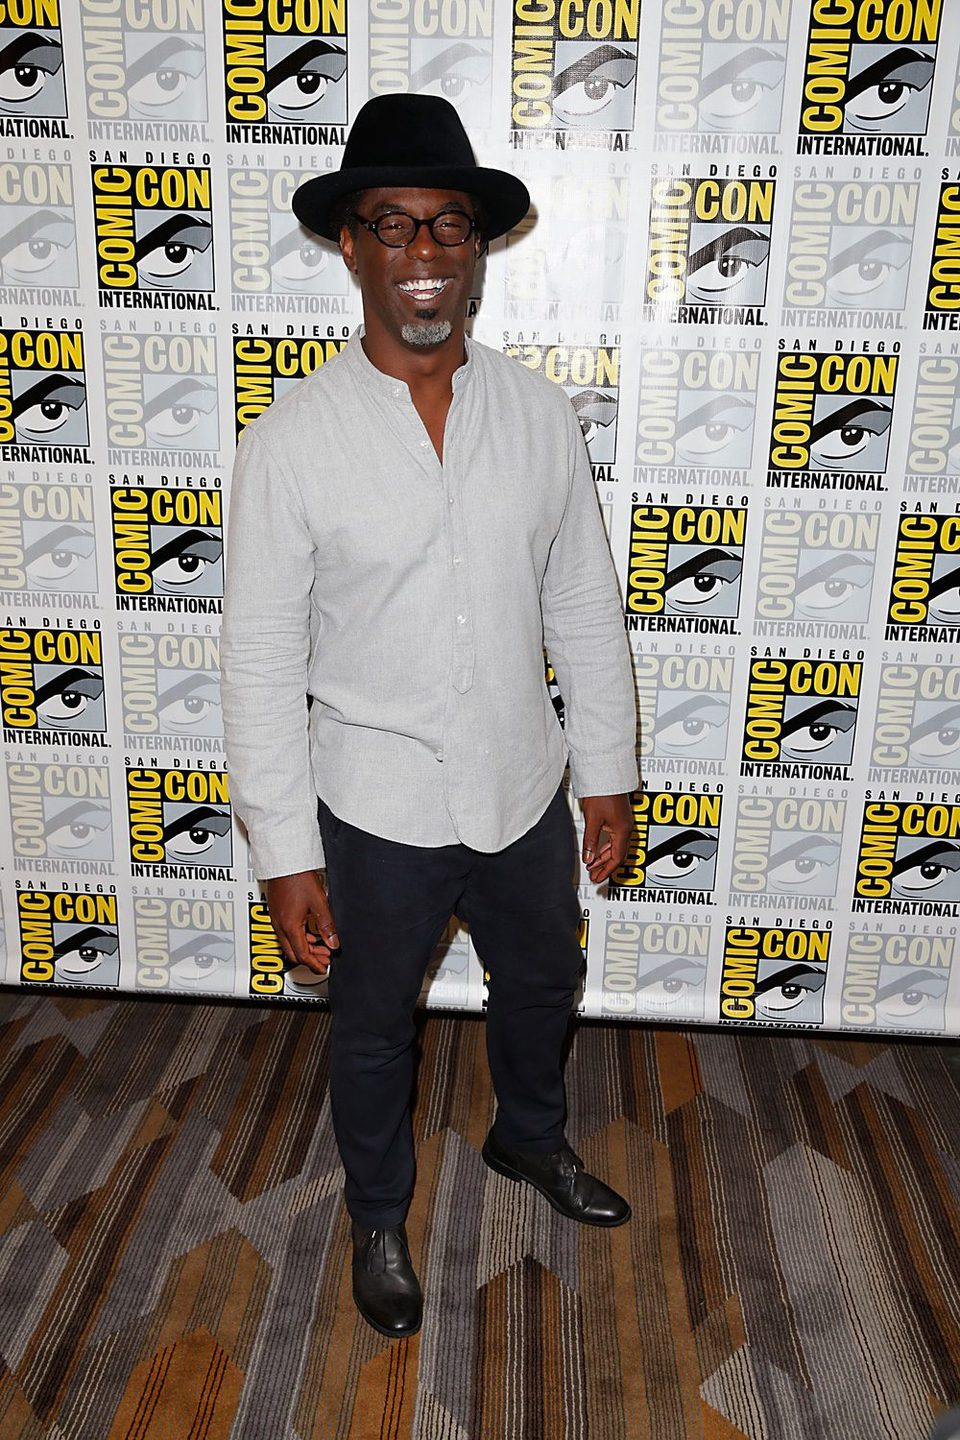 Isaiah Washington at the Comic-Con 2015